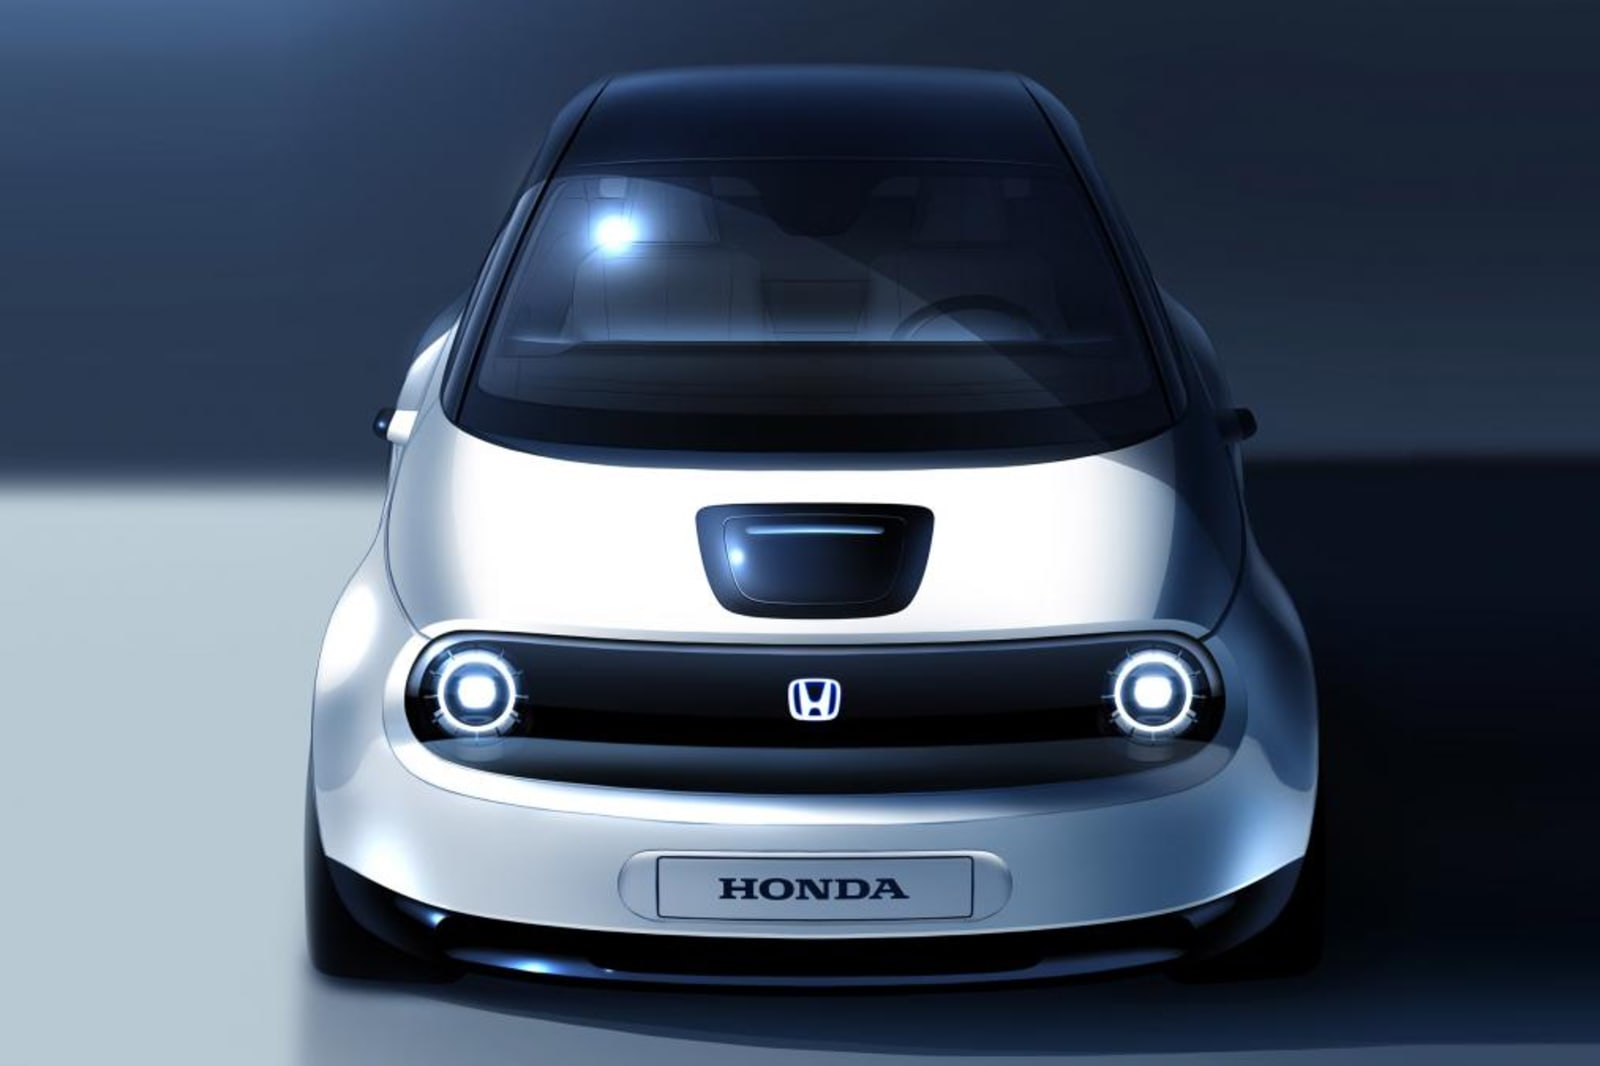 Honda will show off a new EV prototype in March